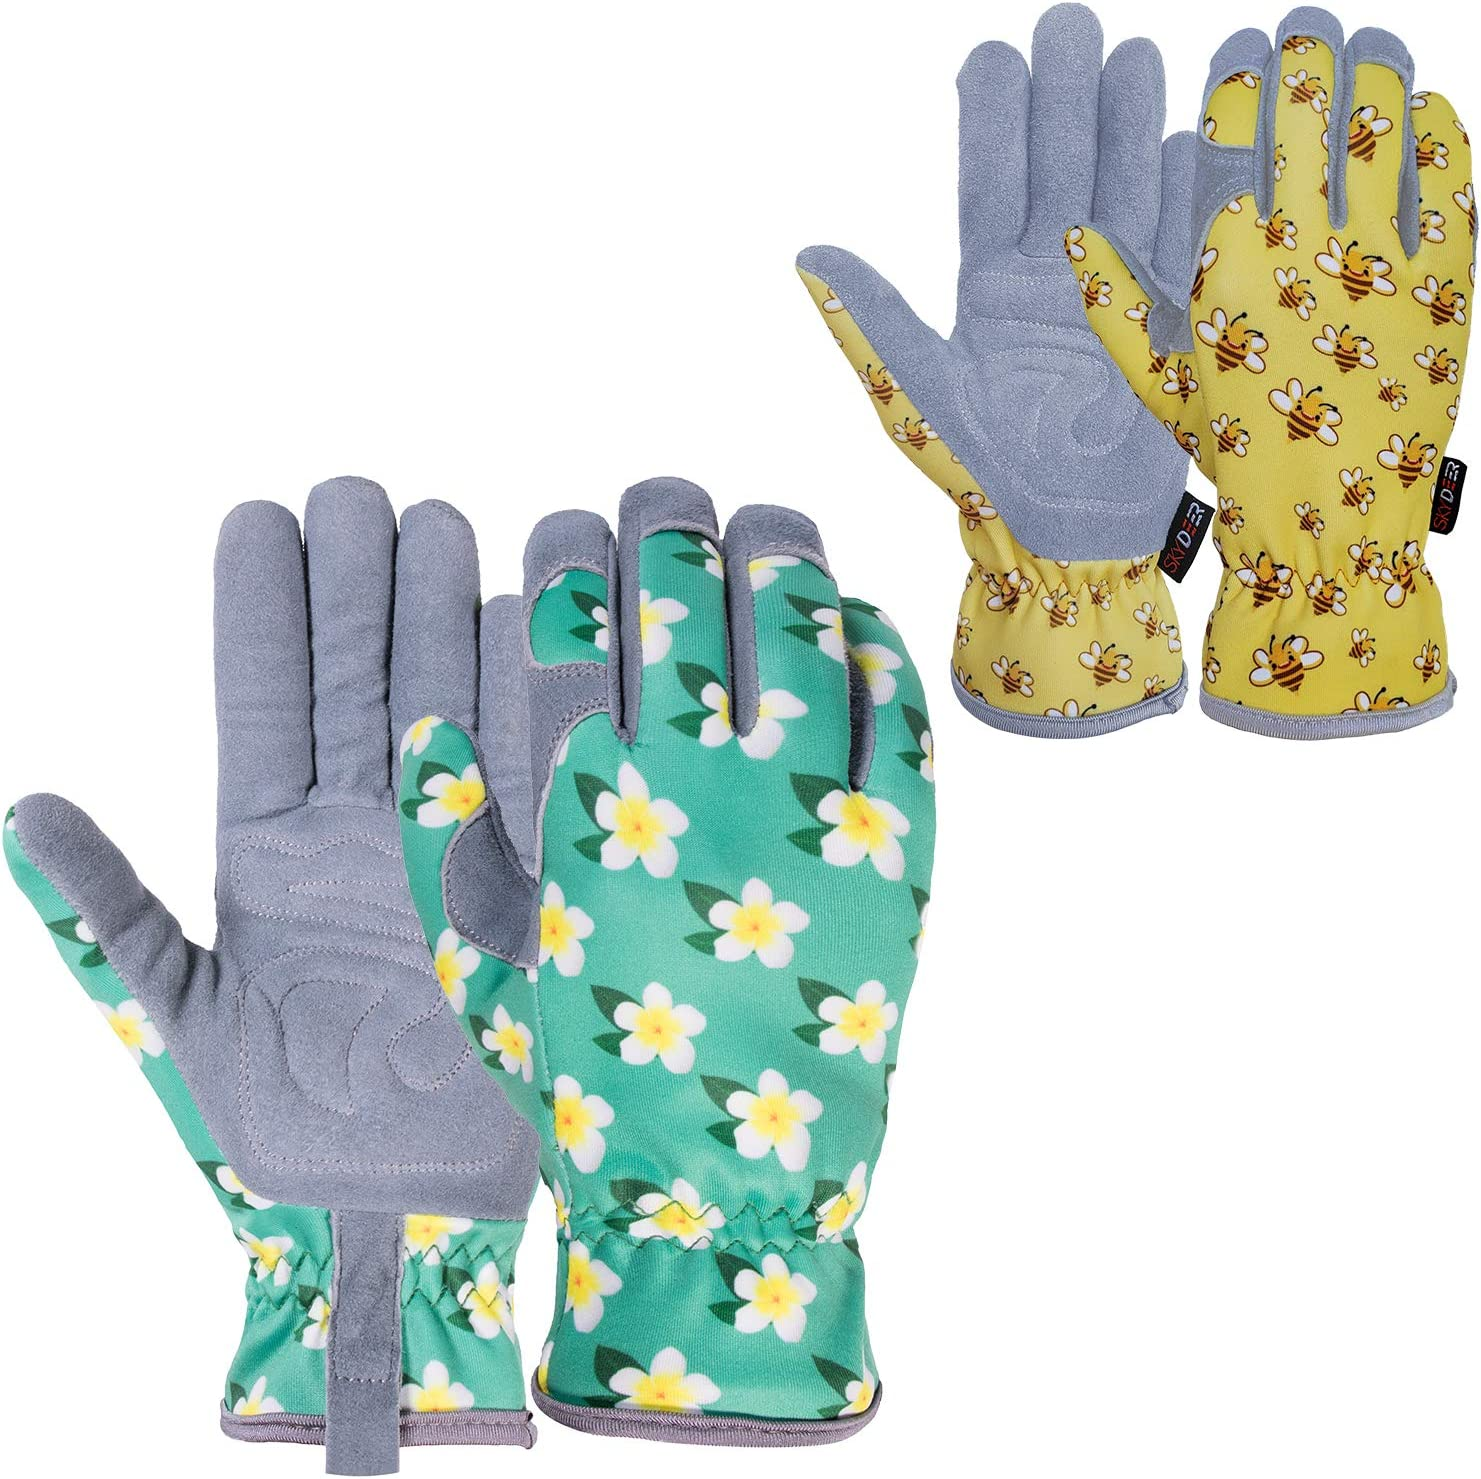 SKYDEER Deerskin Leather Suede Gardening and Work Gloves for Women and Kids (SD6611, SD6624/M)